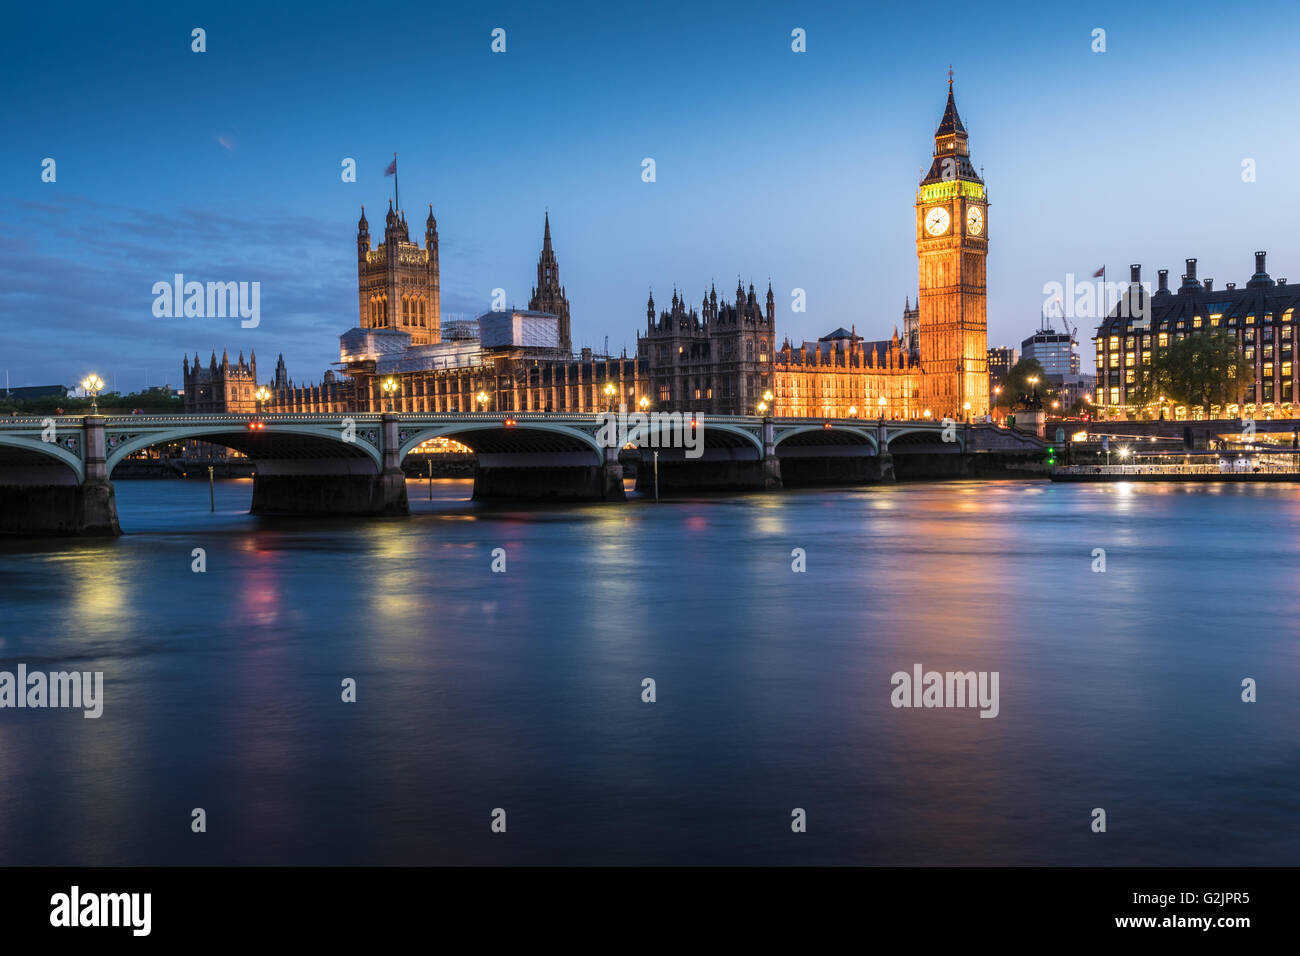 The Houses of Parliament, Elizabeth Tower, Big Ben and the River Thames in London, England at dusk - Stock Image